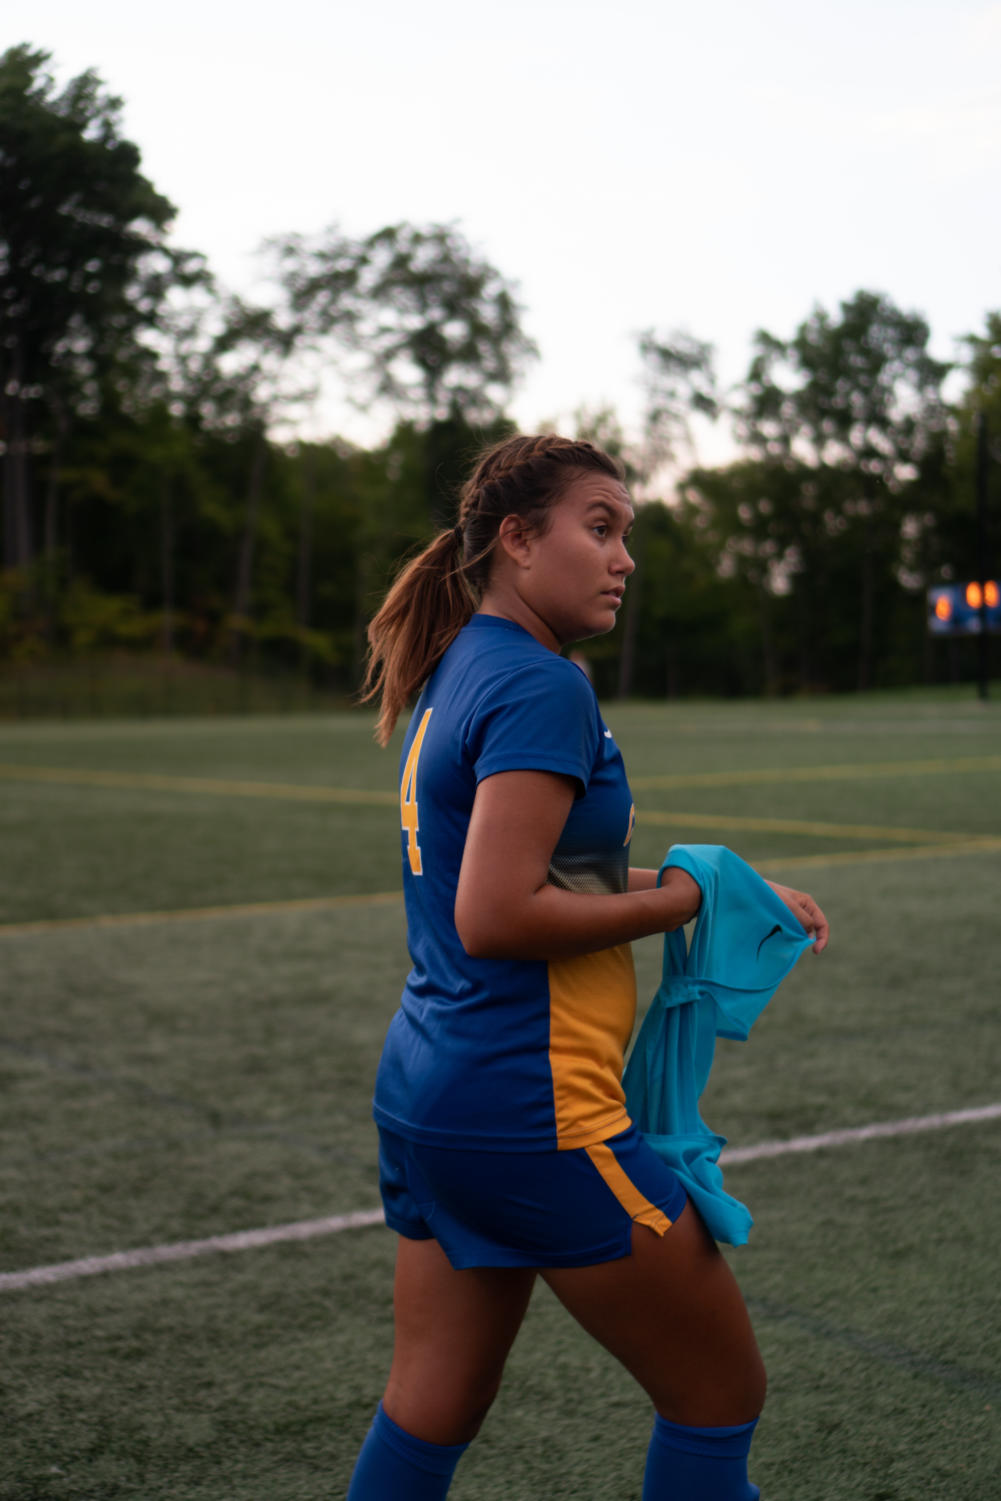 CHS soccer player and senior Kate Donovan prepares to get ready for her soccer game against Lawrence North. Donovan is a team captain. Donovan said,